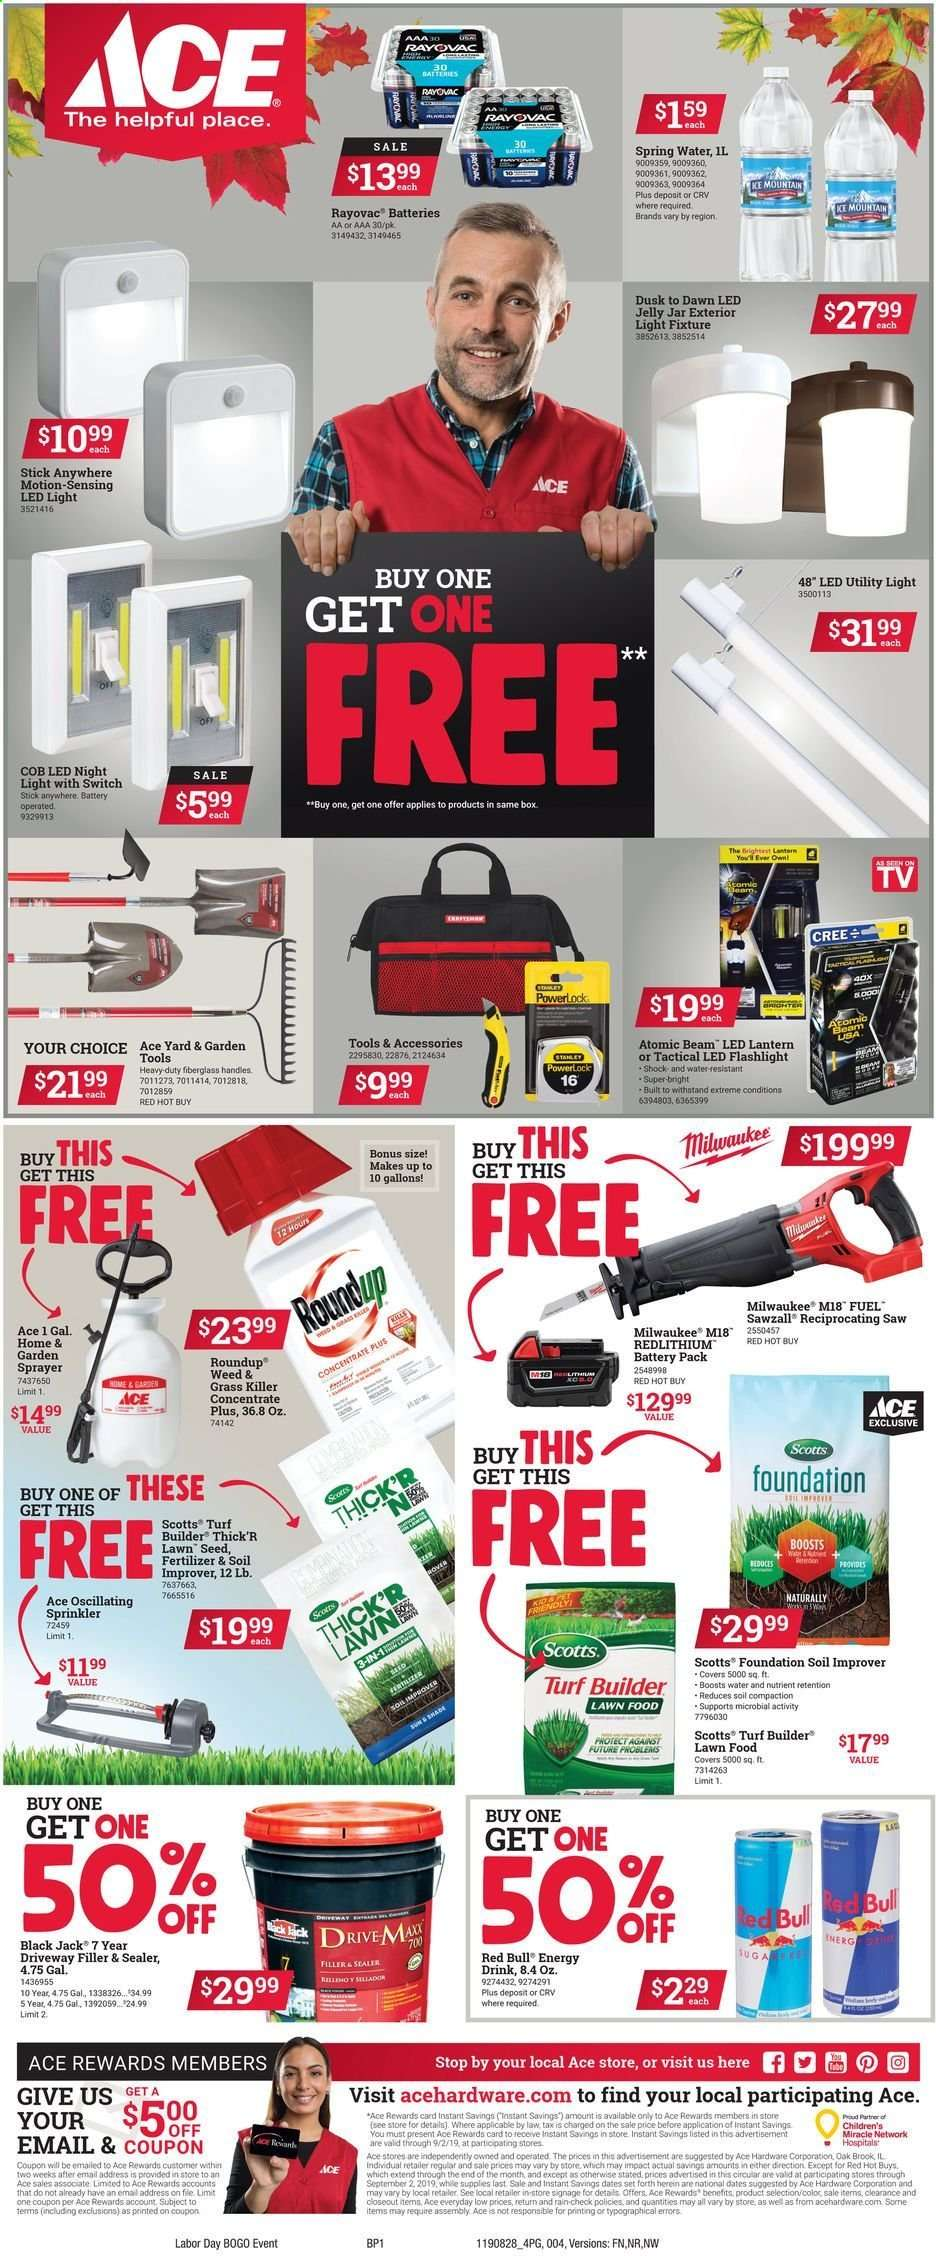 ACE Hardware flyer 08 28 2019 - 09 02 2019 | Weekly-ads us